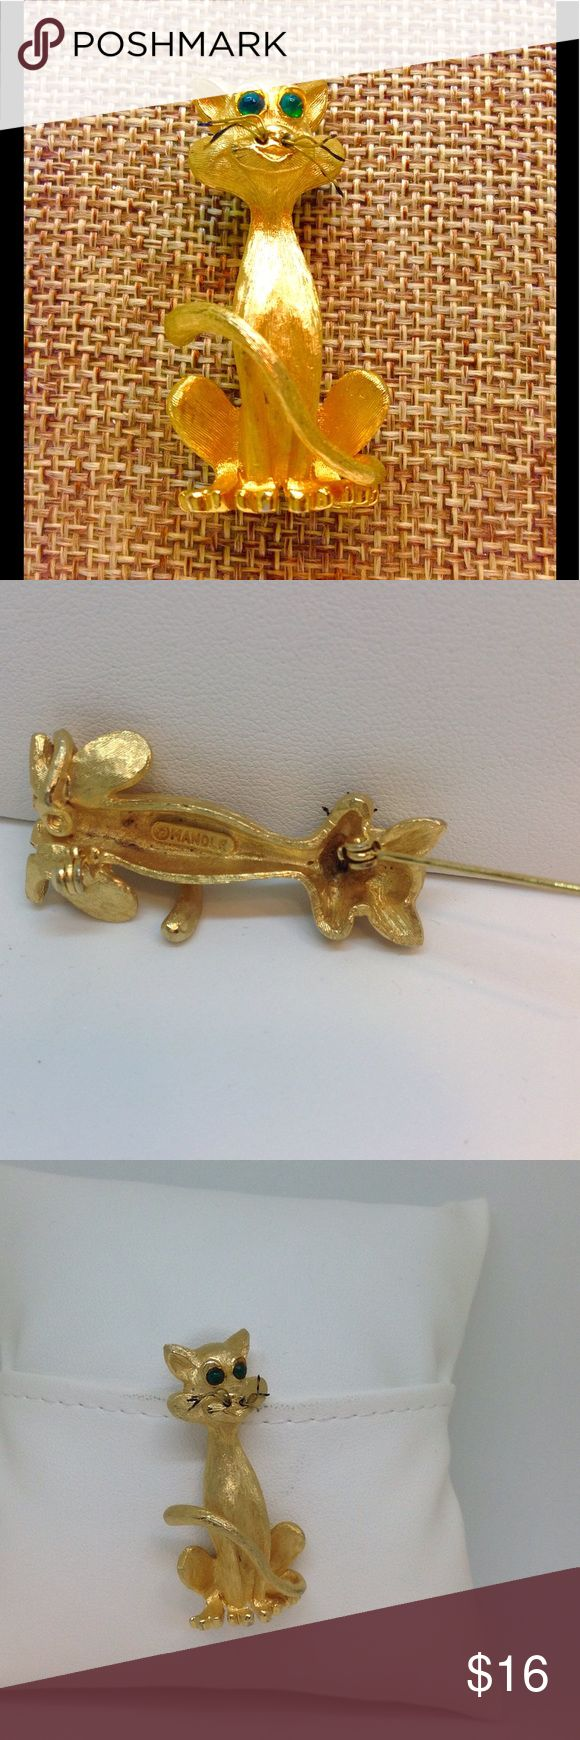 "Designer Mandle Cat Brooch Brush Gold Emerald Eyes Vintage Brooch in Pristine Condition with Rollover Clasp.  Body is brushed gold, toes are polished look.  Whiskers are made of tiny wires with black and touch of gold.  Measures 1-3/4"" X 1"". Mandle Jewelry Brooches"